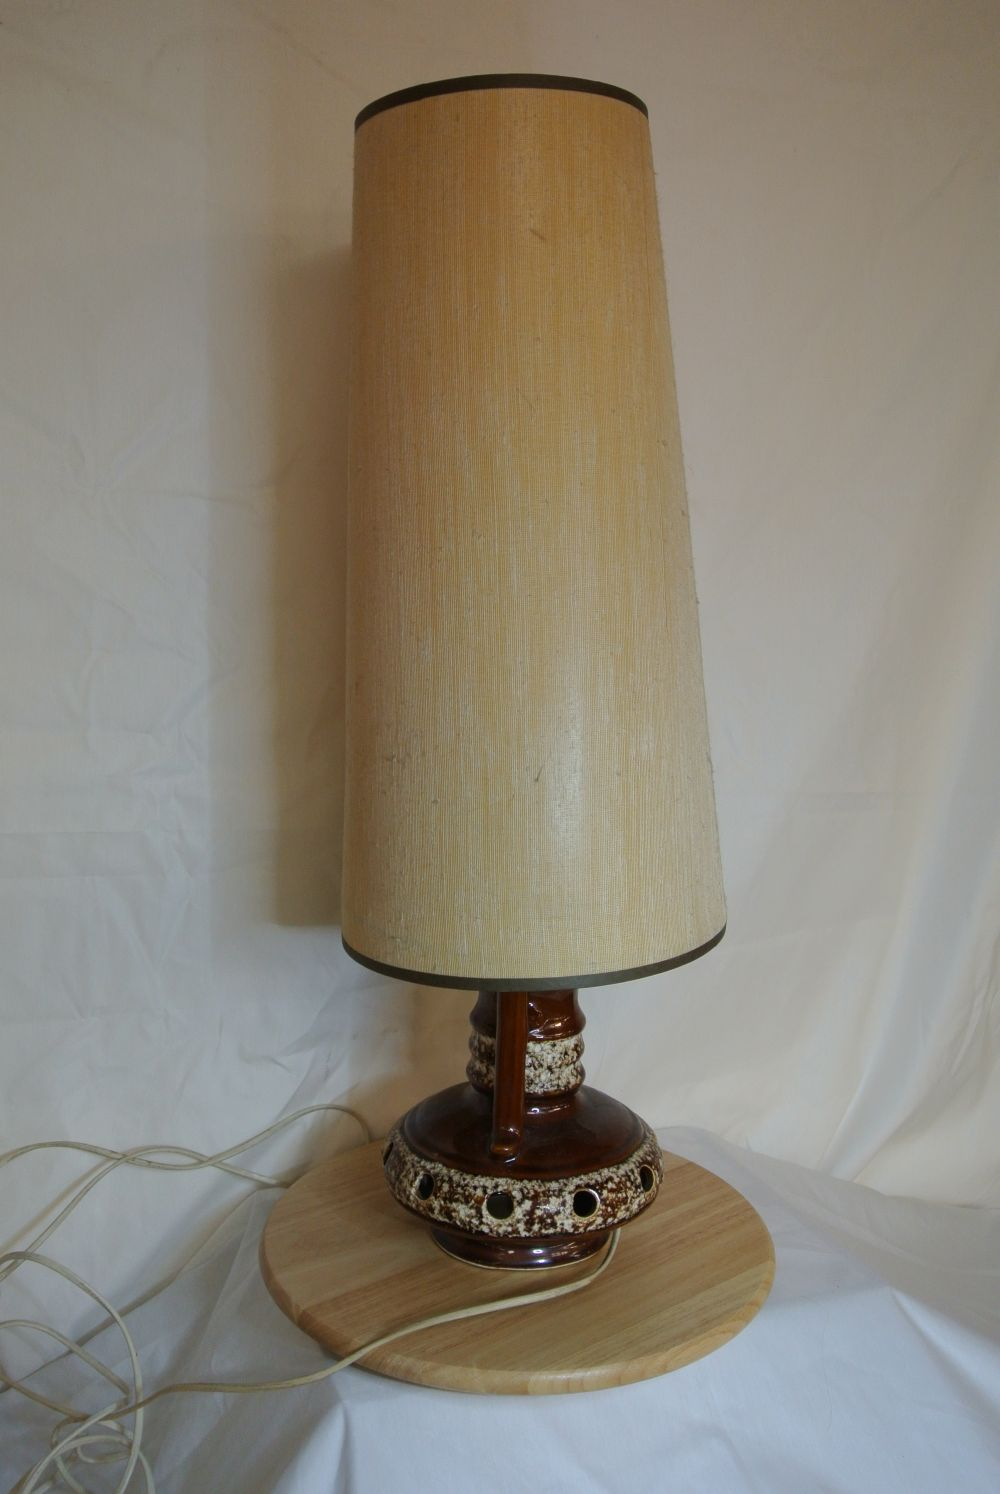 A vintage/ Mid Century 'Fat Lava' German ceramic table lamp with shade.